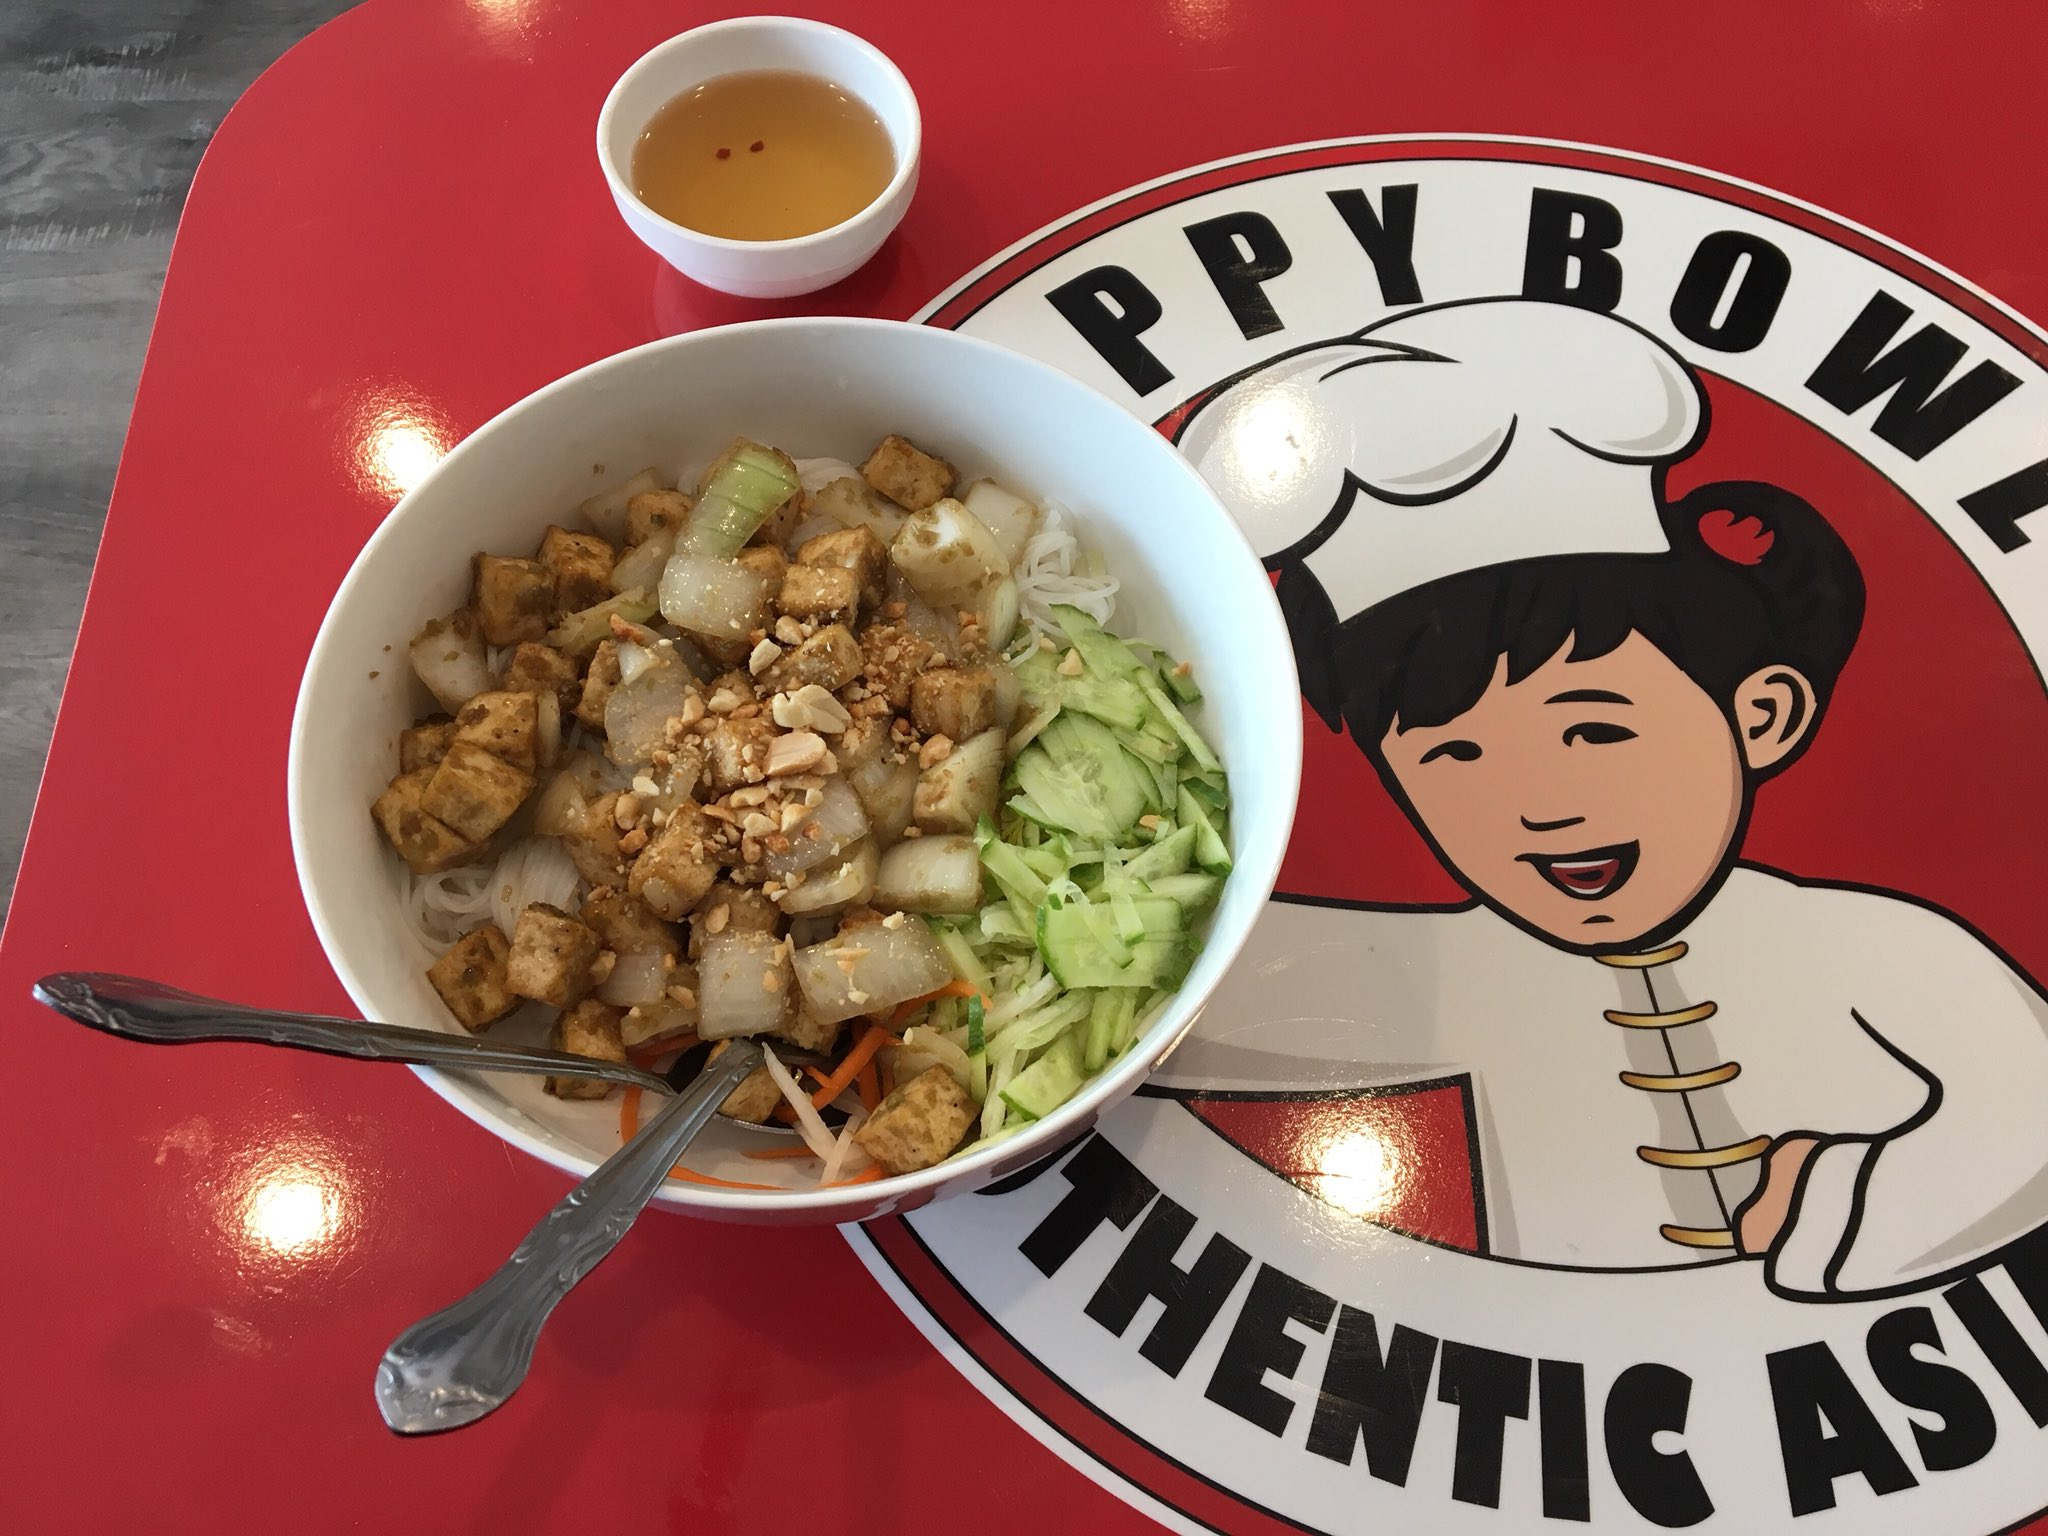 Lisa Mckinnon On Twitter And They Re Back Happy Bowl In Camarillo Has Reopened With New Owners New Look Choices Include Quick Steam Table Service Or A La Carte Menu Of Bun Pho Lo